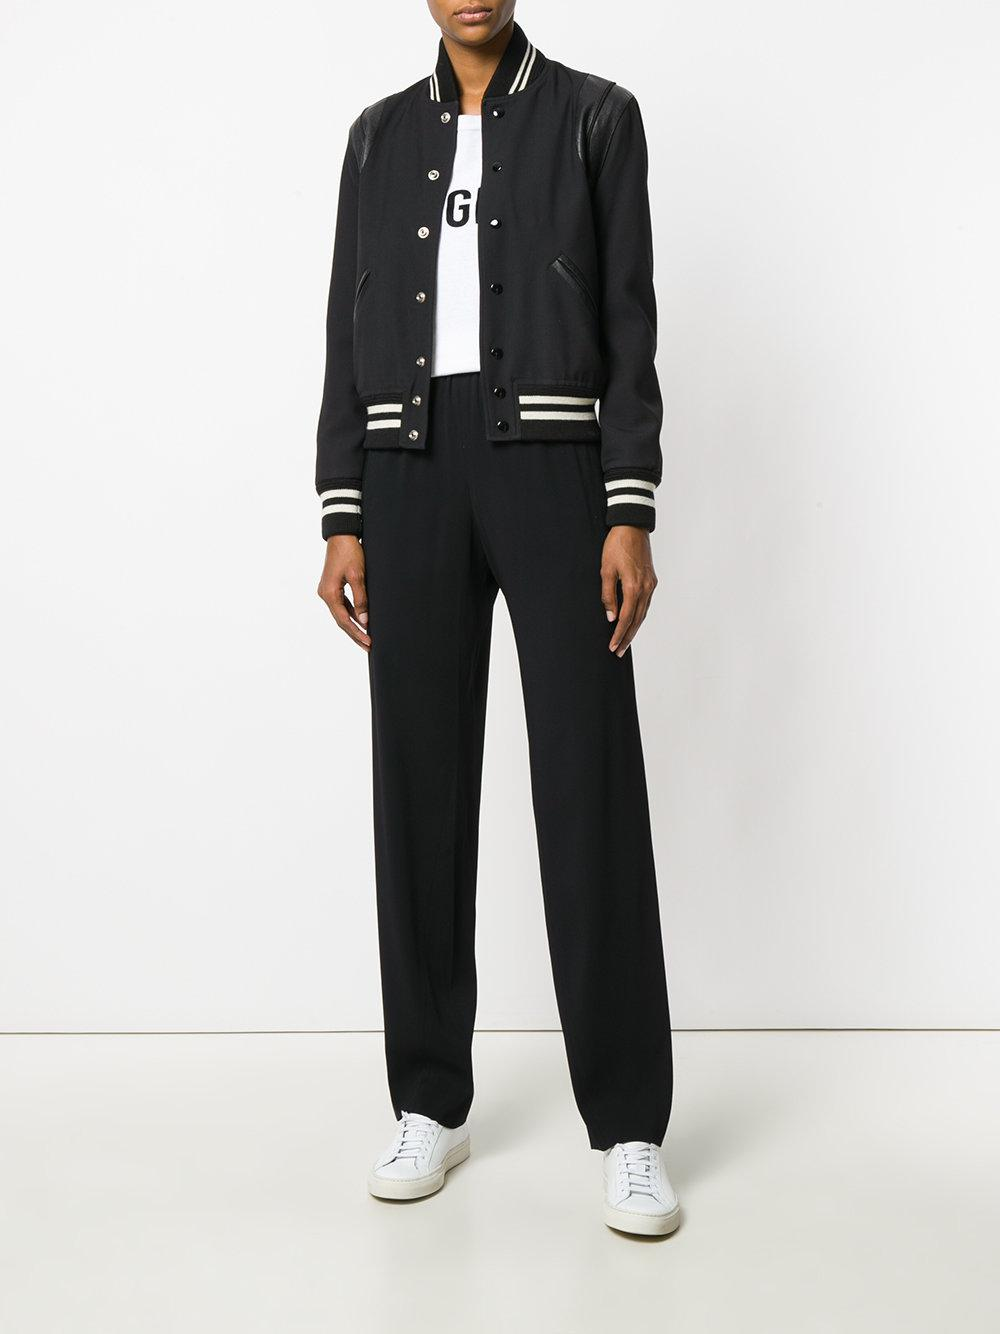 straight-leg tailored trousers - Black Paco Rabanne Online Store Finishline Cheap Price Exclusive Sale Online Clearance How Much 6yhvsXt2